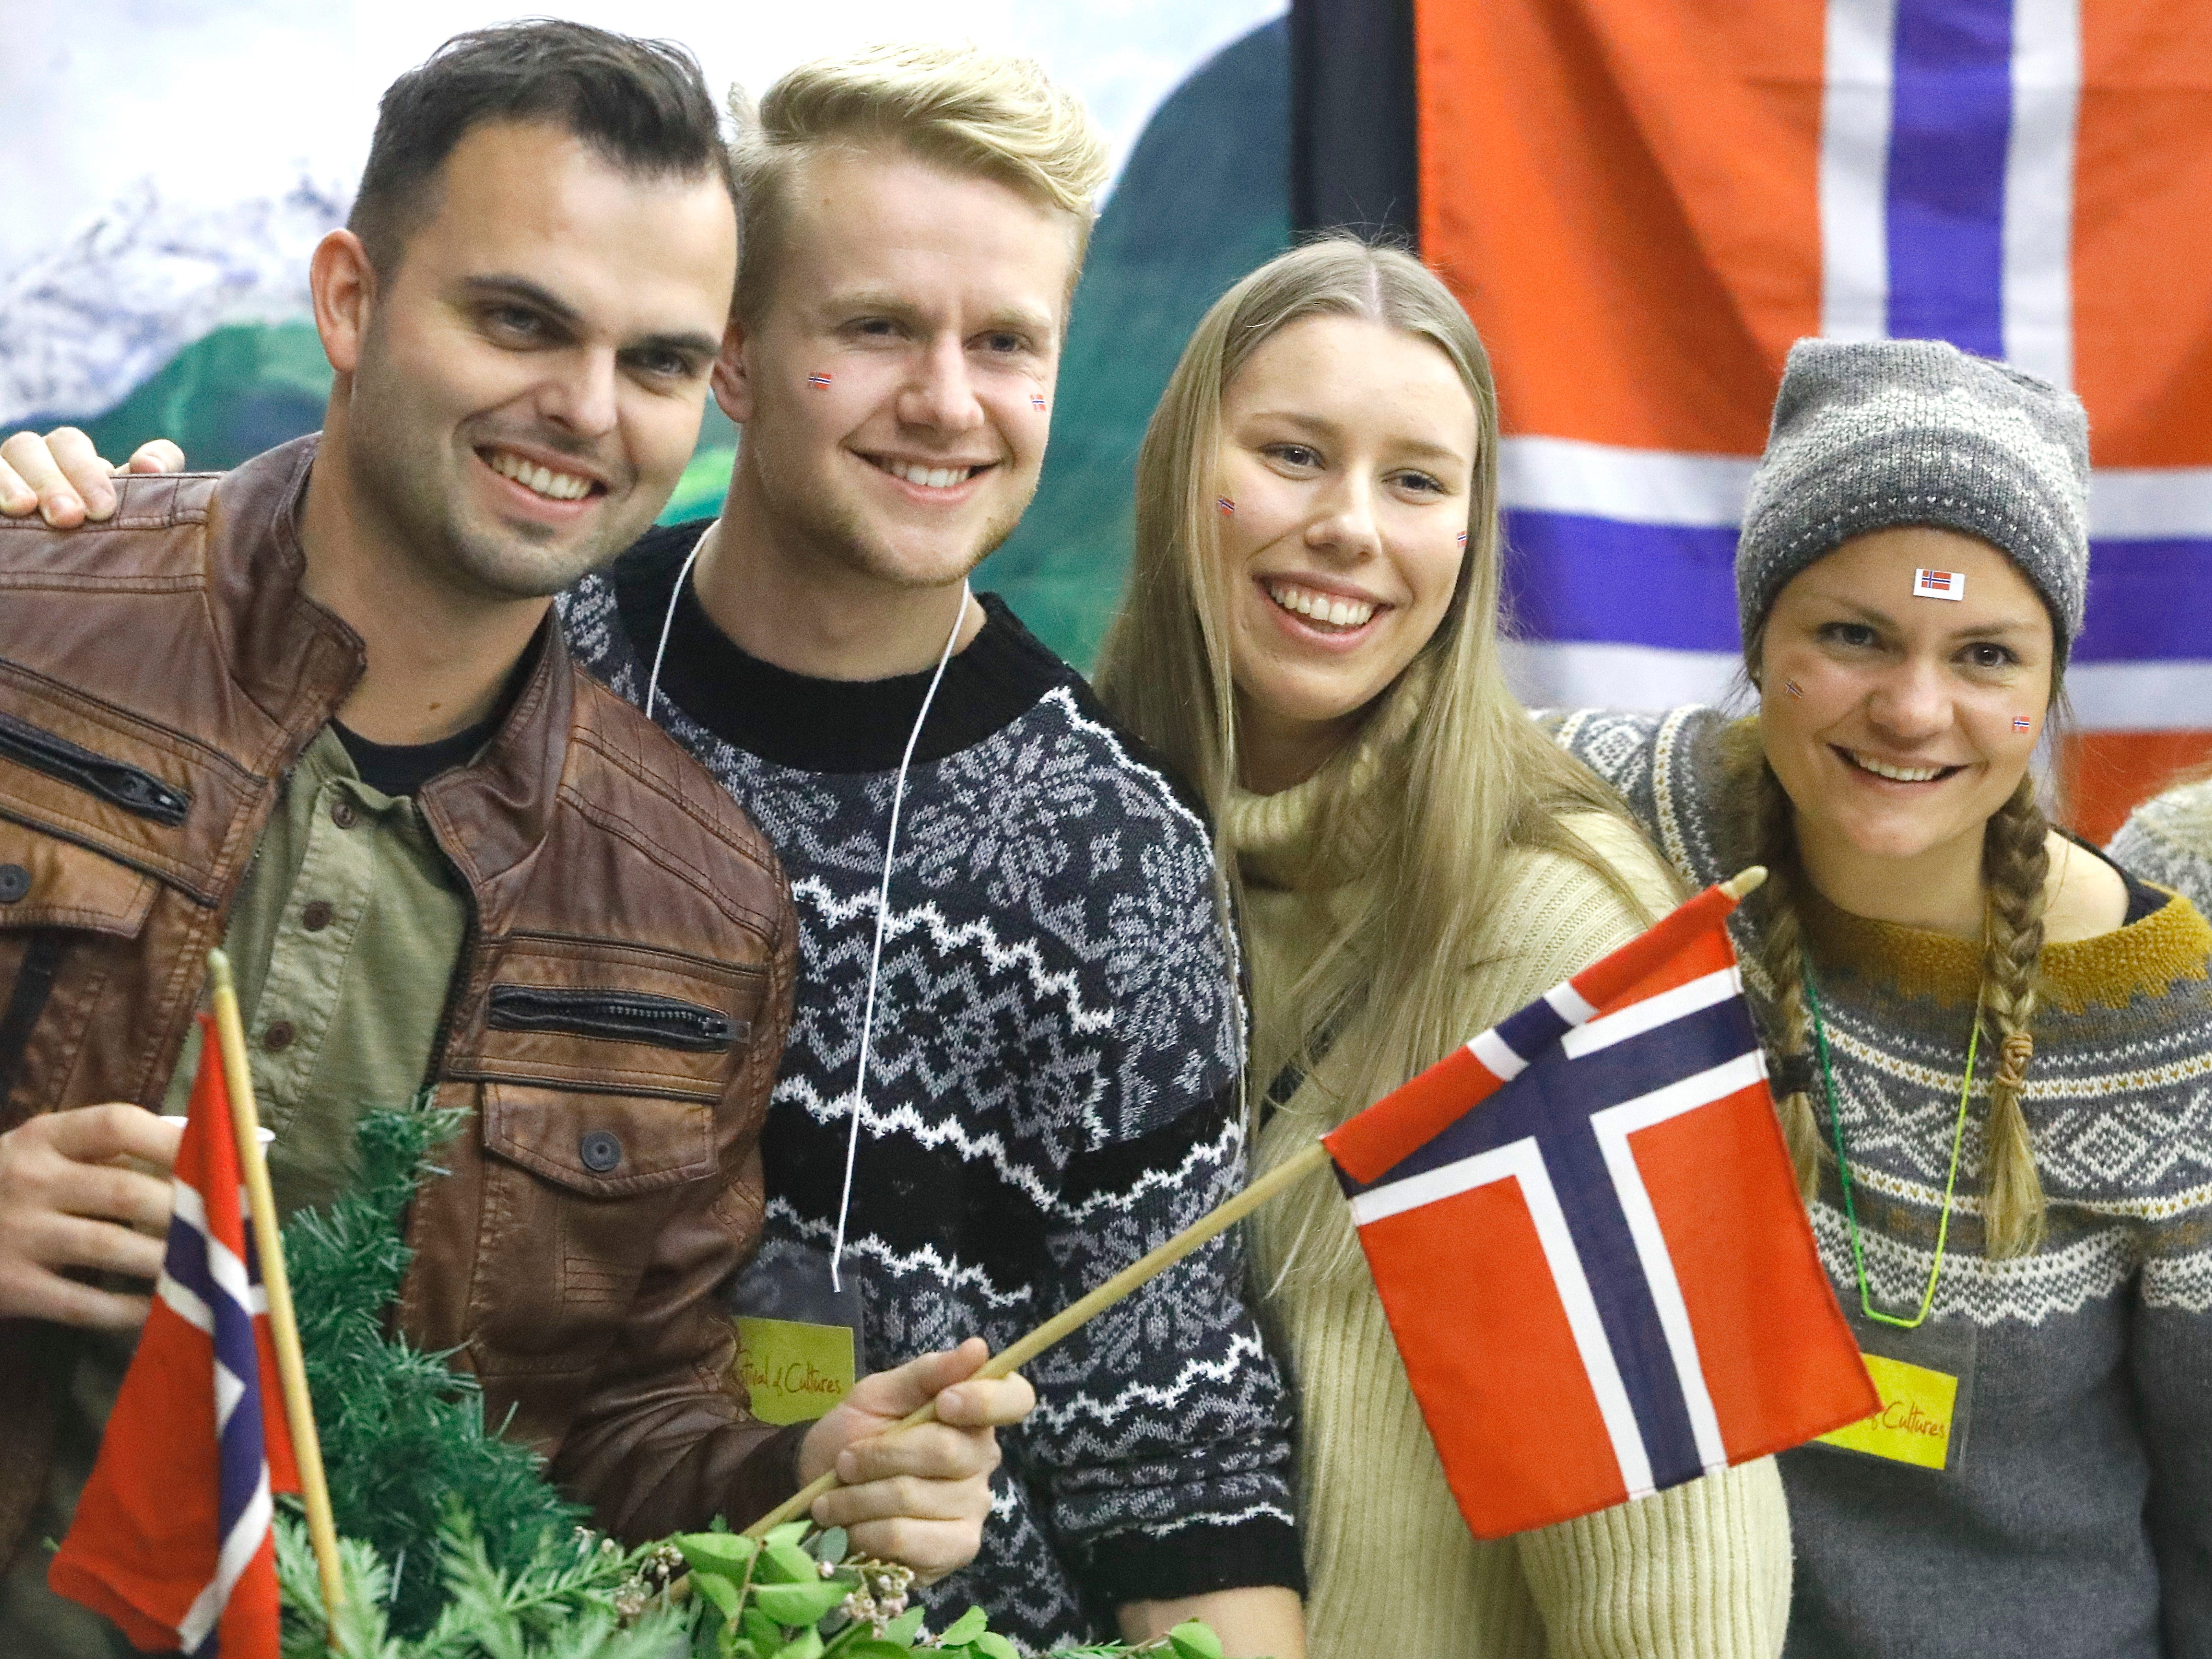 Bethel School of Supernatural Ministry students from Norway pose for a photo during the 10th annual Festival of Cultures on Feb. 9, 2019.